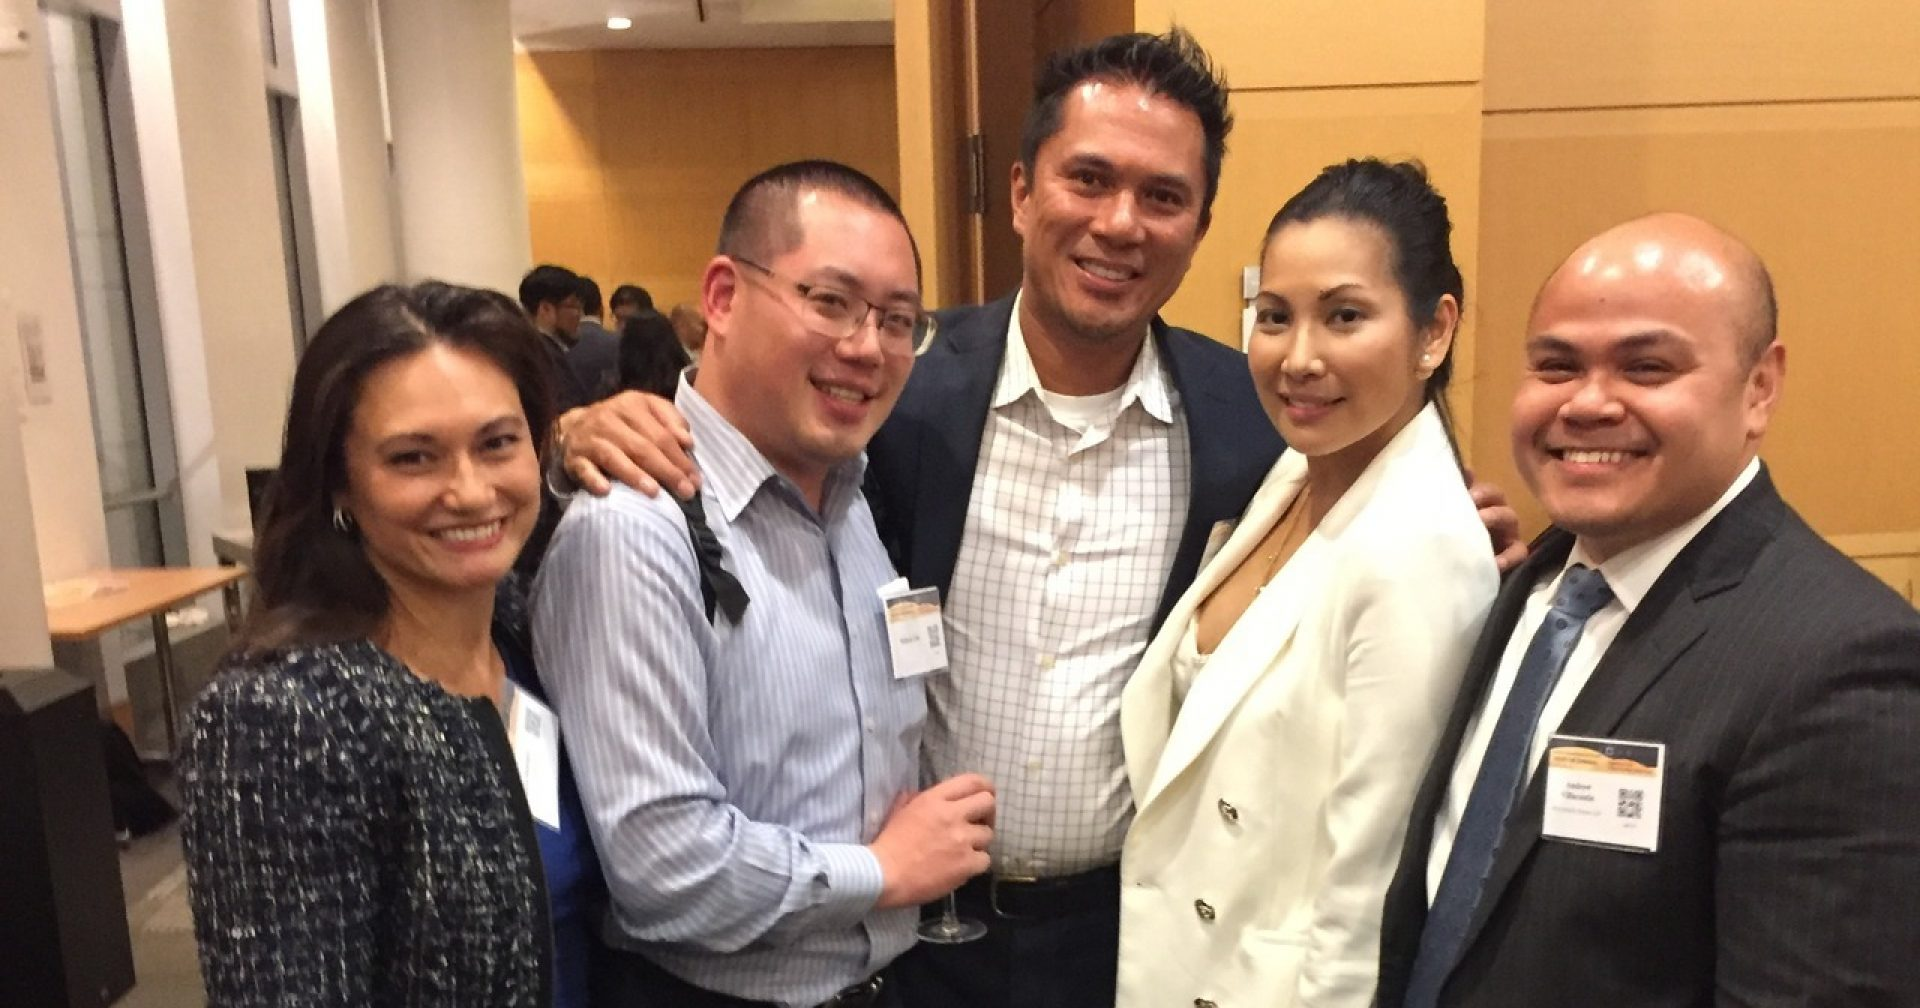 NAPABA Northeast Regional / AABANY Fall Conference